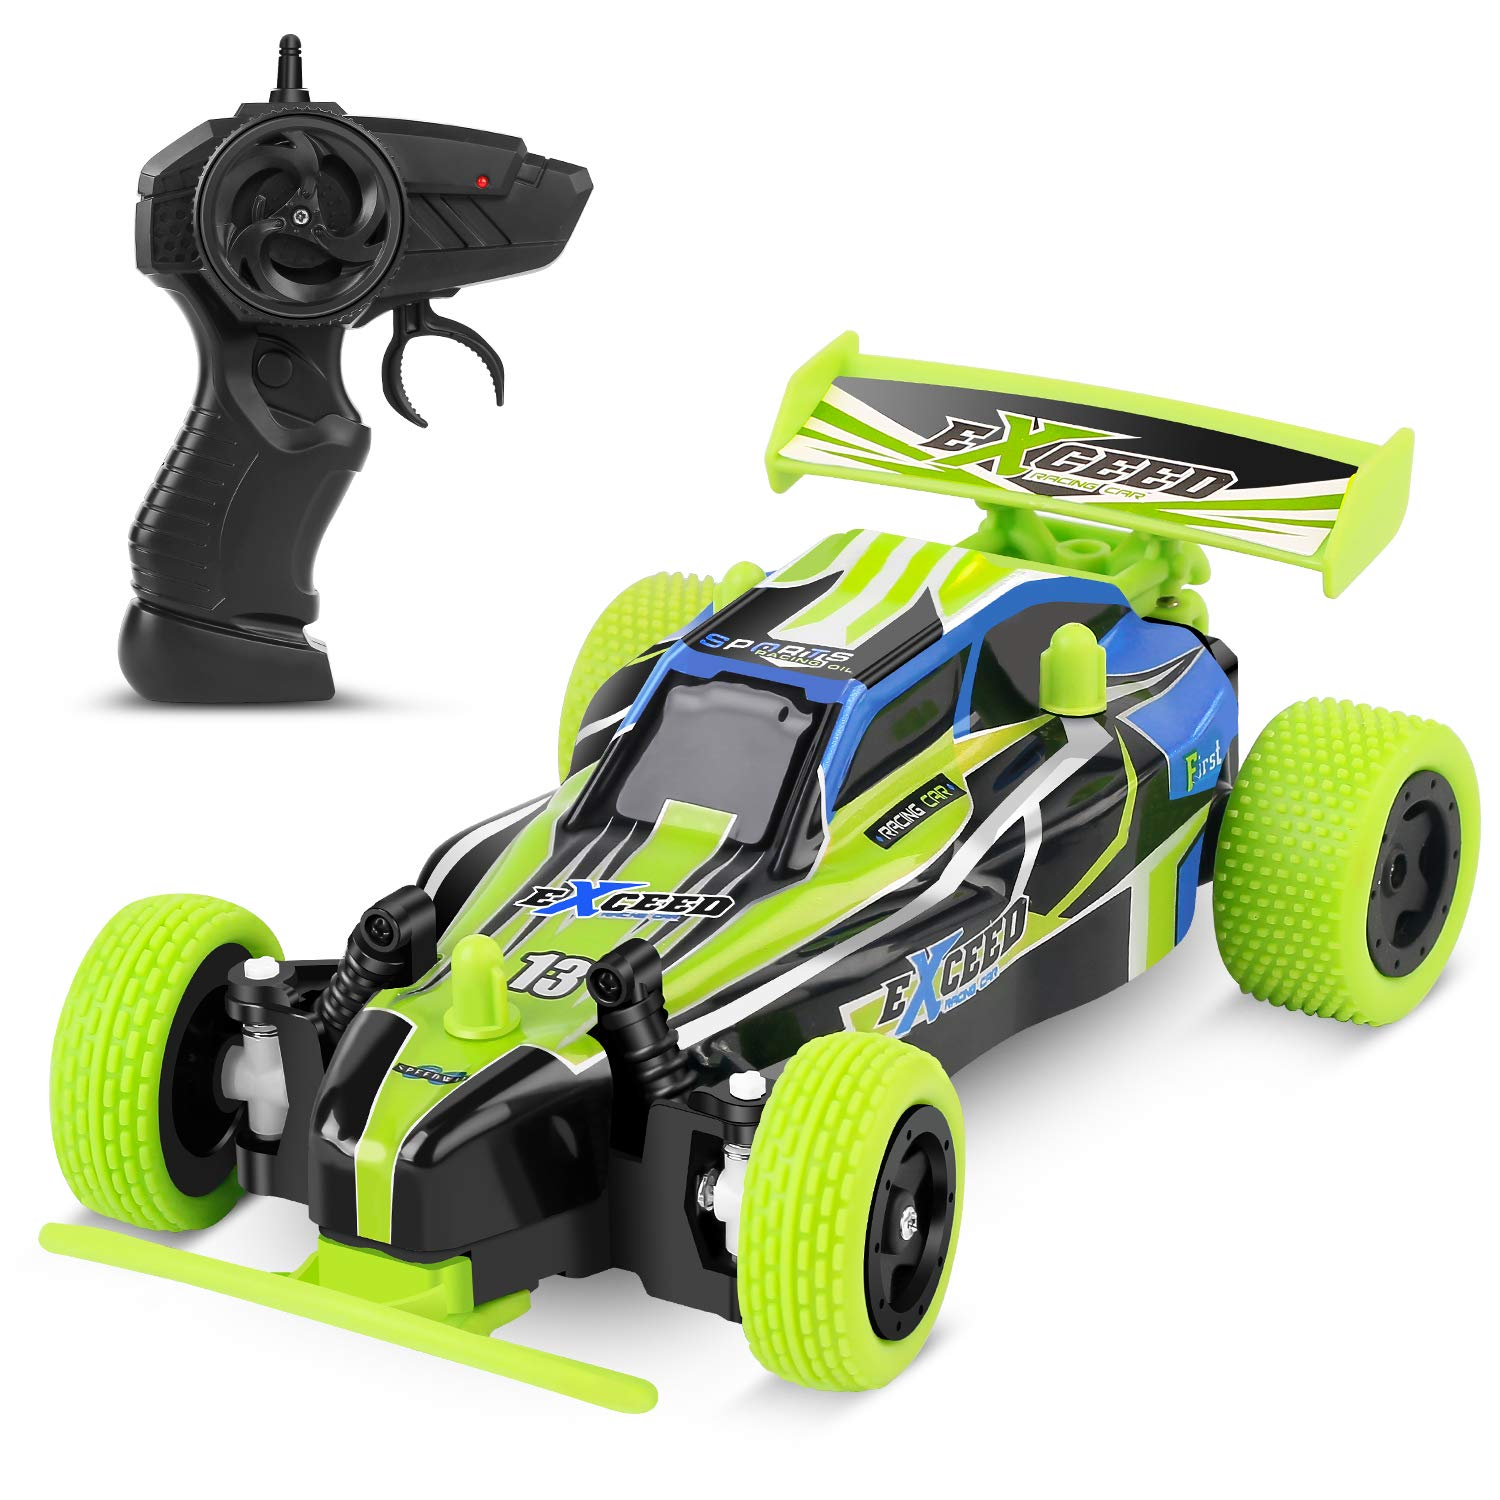 MISSLFJY Remote Control Car, High Speed Racing Car Electronic Hobby Car Buggy Vehicle 2.4 GHZ 1:22 Scale RC Cars Toys for Kids Toddler Boys Girls with Rechargeable Battery for Car, Two AA Batteries